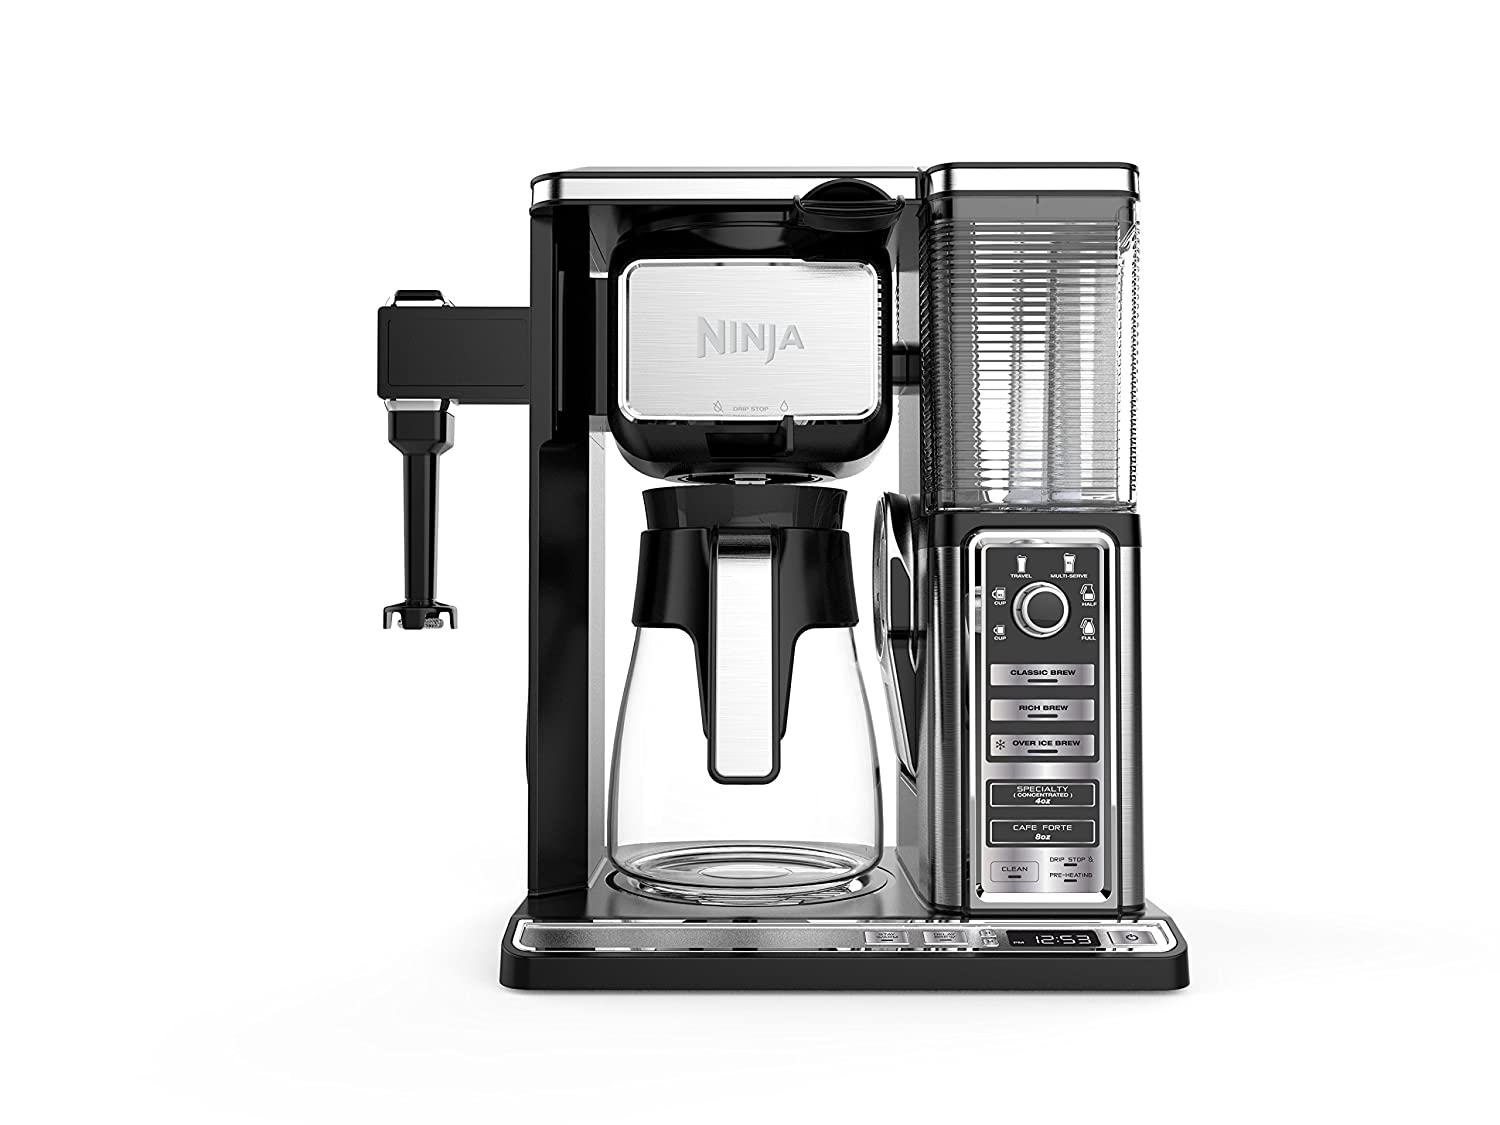 Ninja Coffee Bar Auto-iQ Programmable Coffee Maker with 6 Brew Sizes, 5 Brew Options, Milk Frother, Removable Water Reservoir and Glass Carafe (CF091) SharkNinja